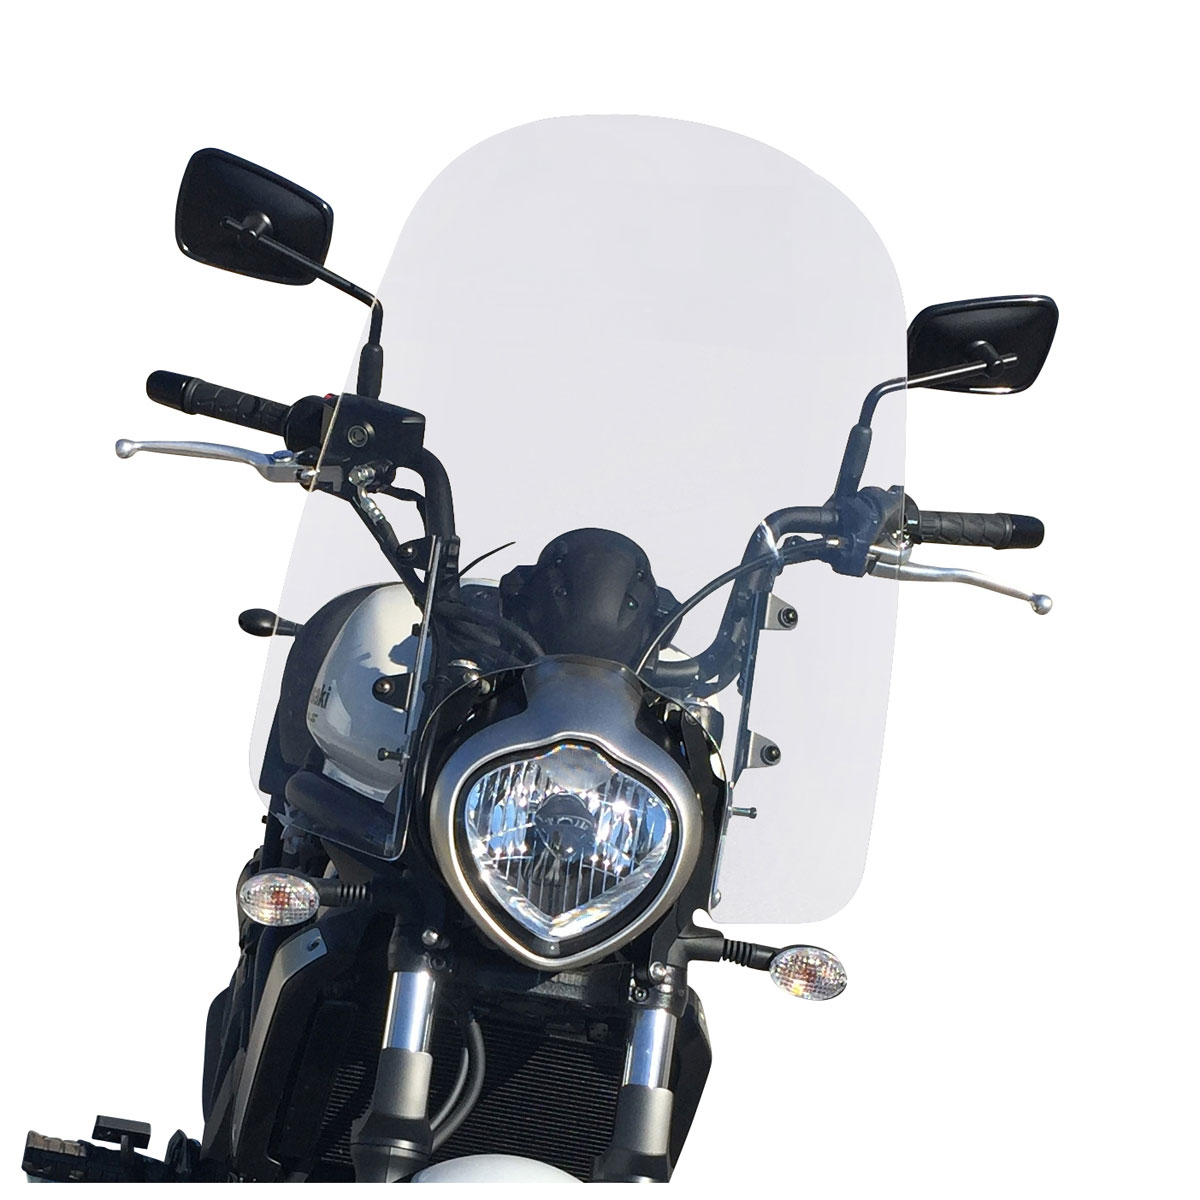 2015 - Up Adjustable Motorcycle Windshield System by Madstad Engineering Compatible 20, Clear Kawasaki Vulcan S